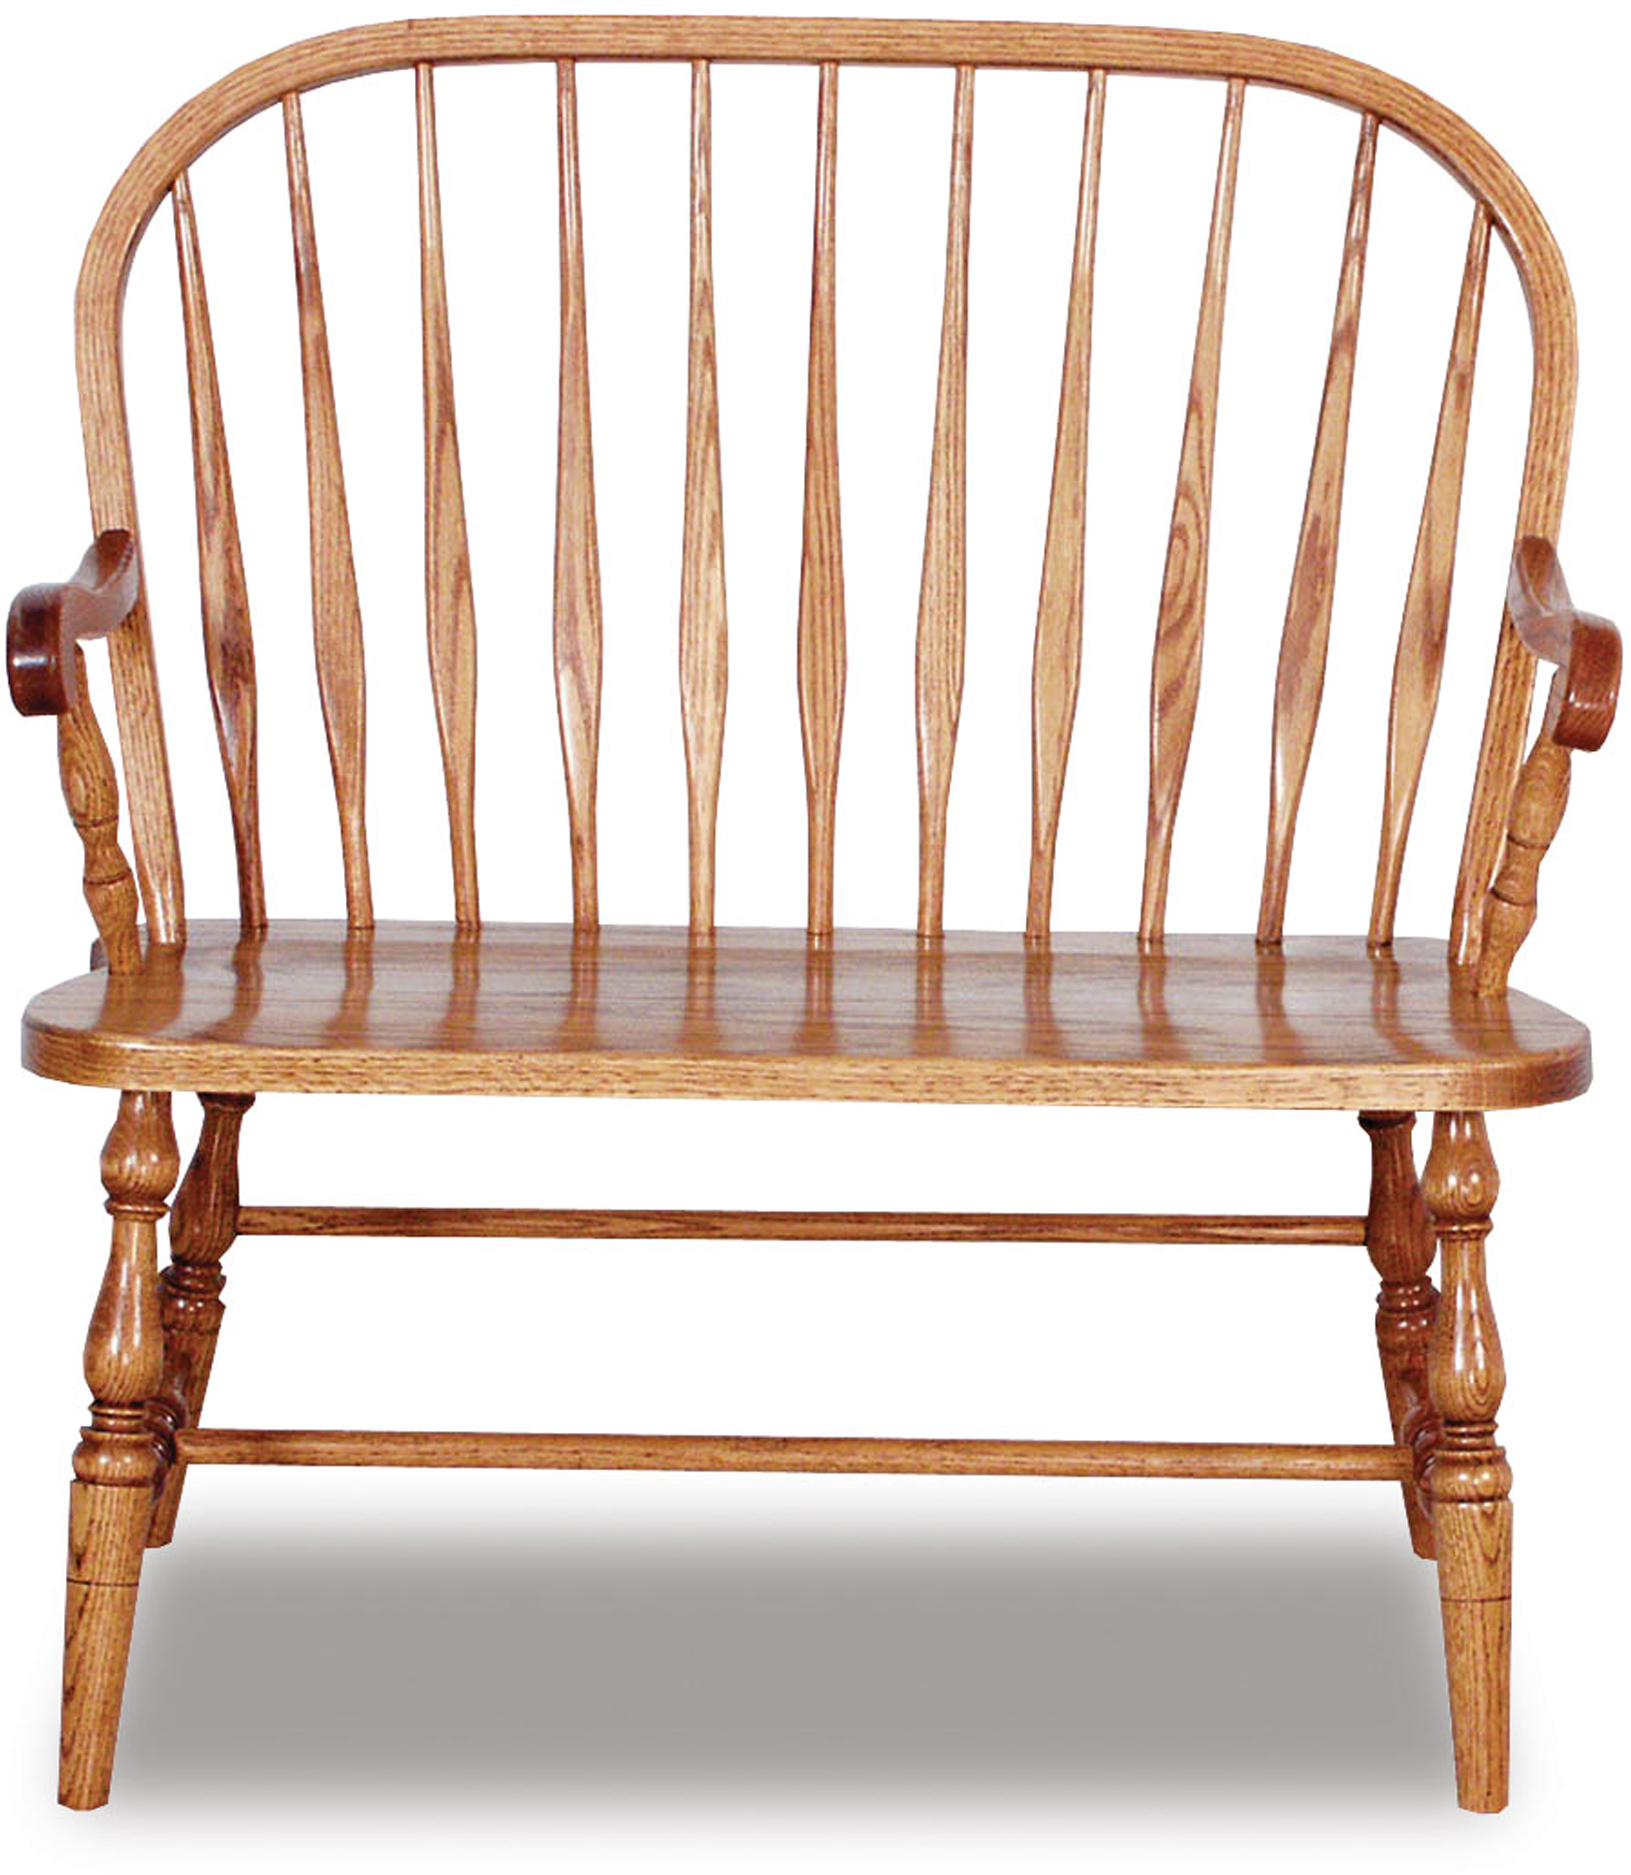 Amish Hardwood Bent Feather Bow Bench Brandenberry Amish